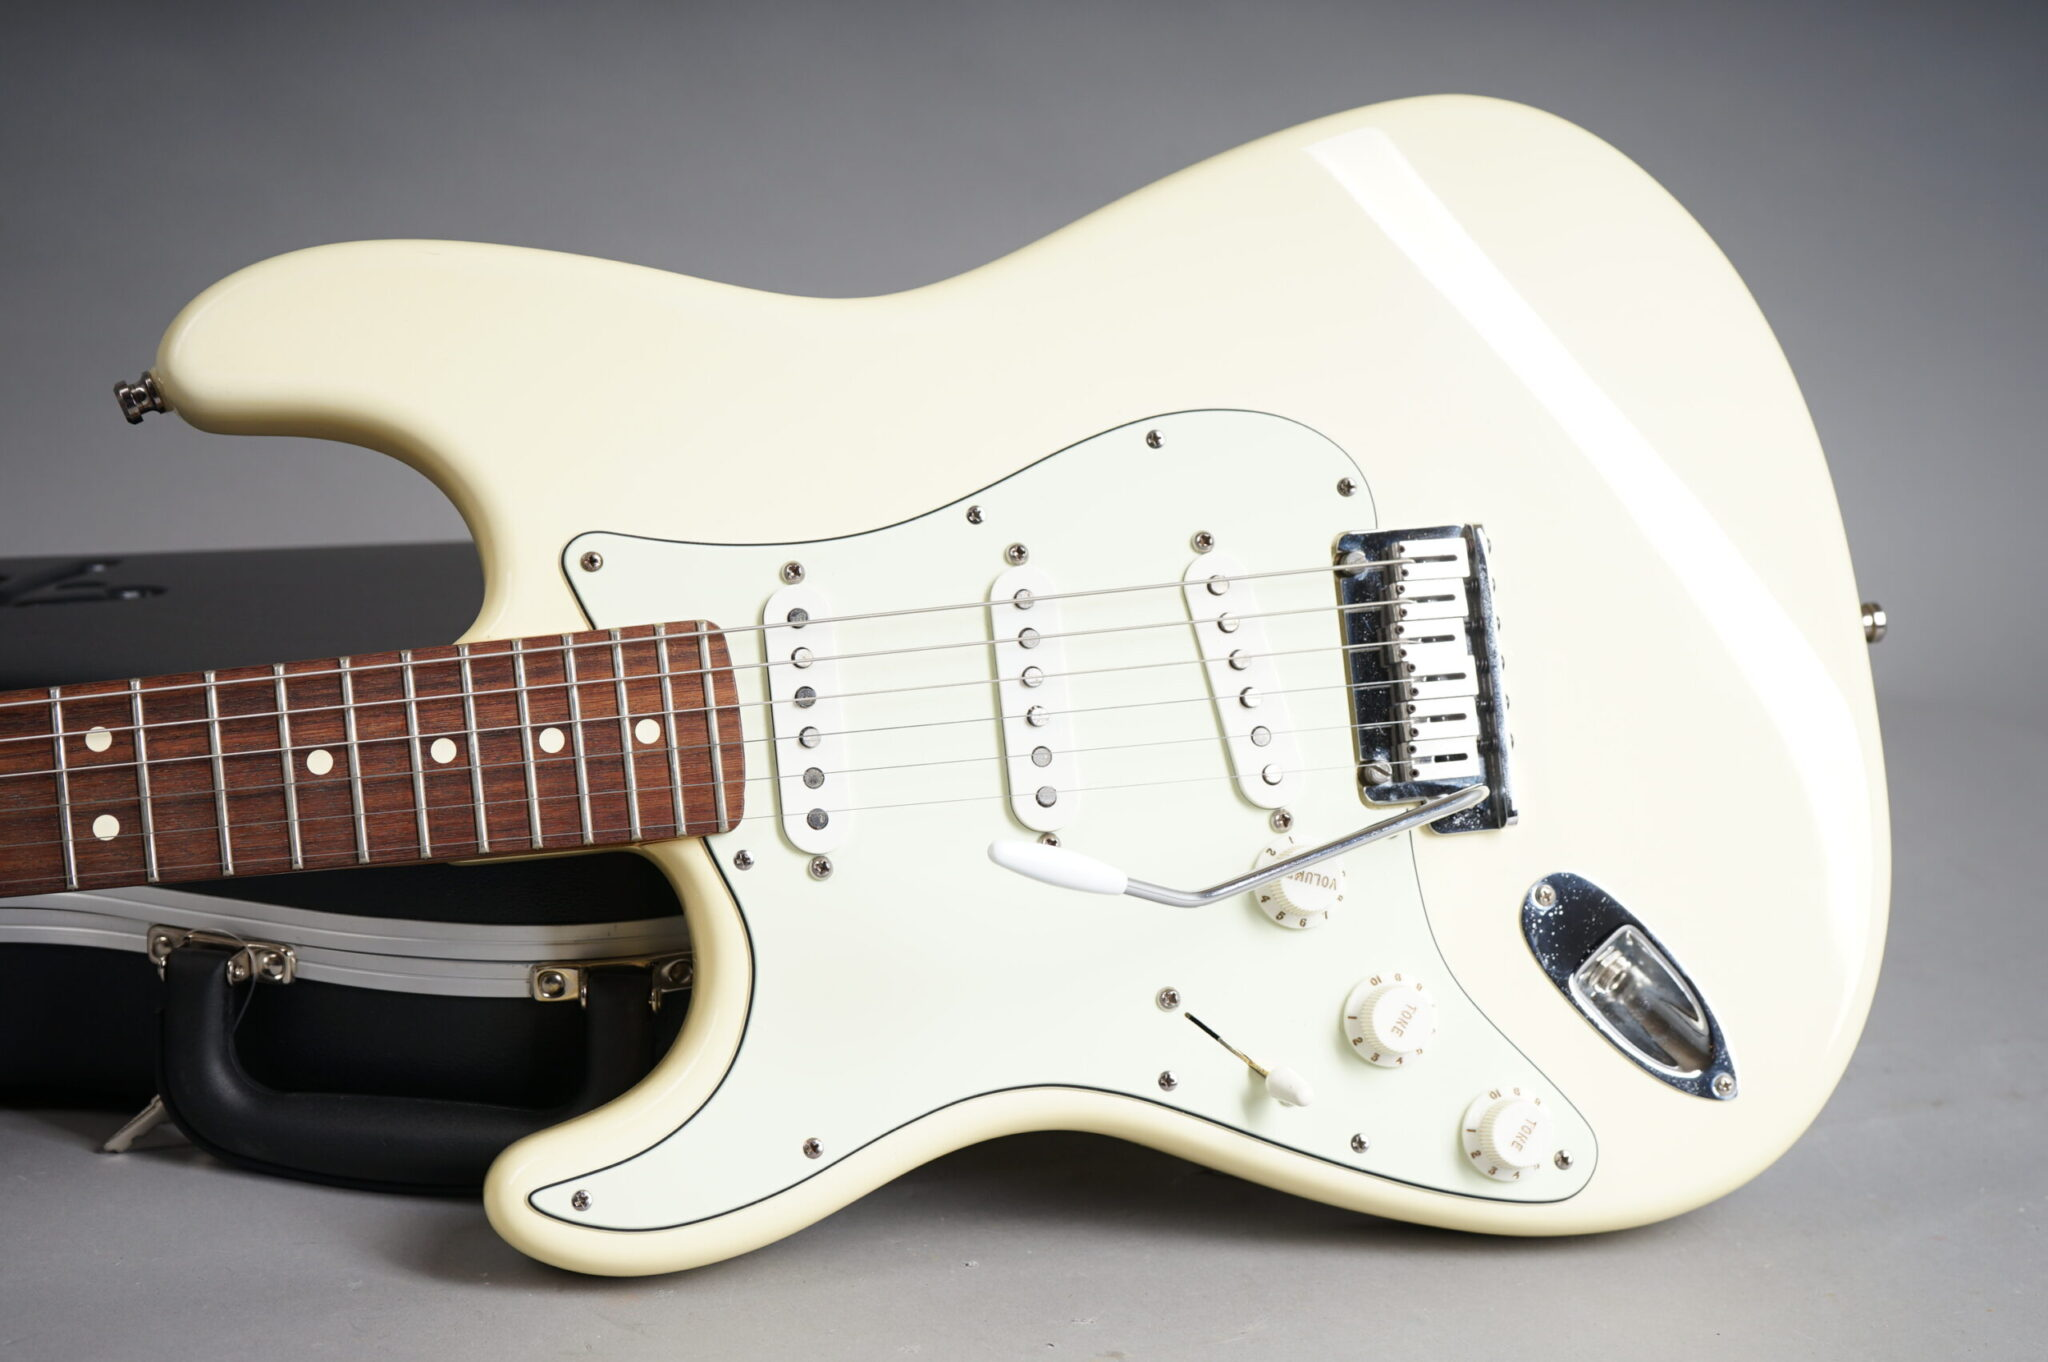 https://guitarpoint.de/app/uploads/products/1999-fender-american-standard-stratocaster-lefthand-olympic-white/1999-Fender-American-Standard-Stratocaster.-Olympic-White-Lefthand-N9375273-8-scaled-2048x1362.jpg